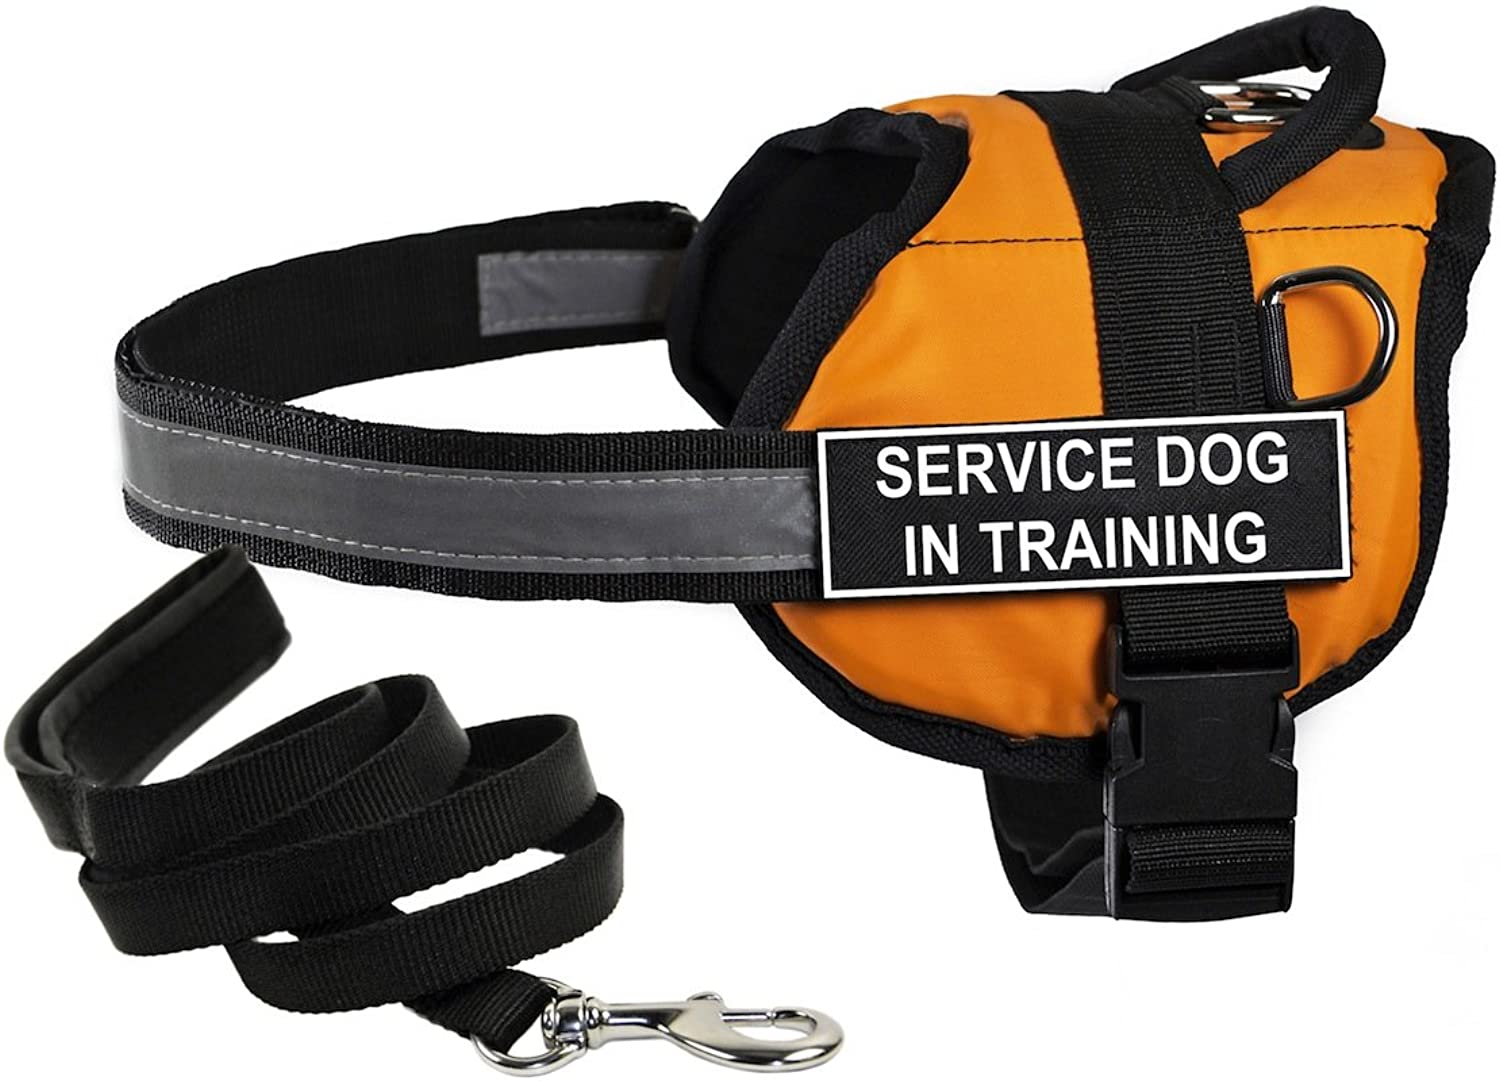 Dean & Tyler's DT Works orange SERVICE DOG IN TRAINING Harness, XSmall, with 6 ft Padded Puppy Leash.